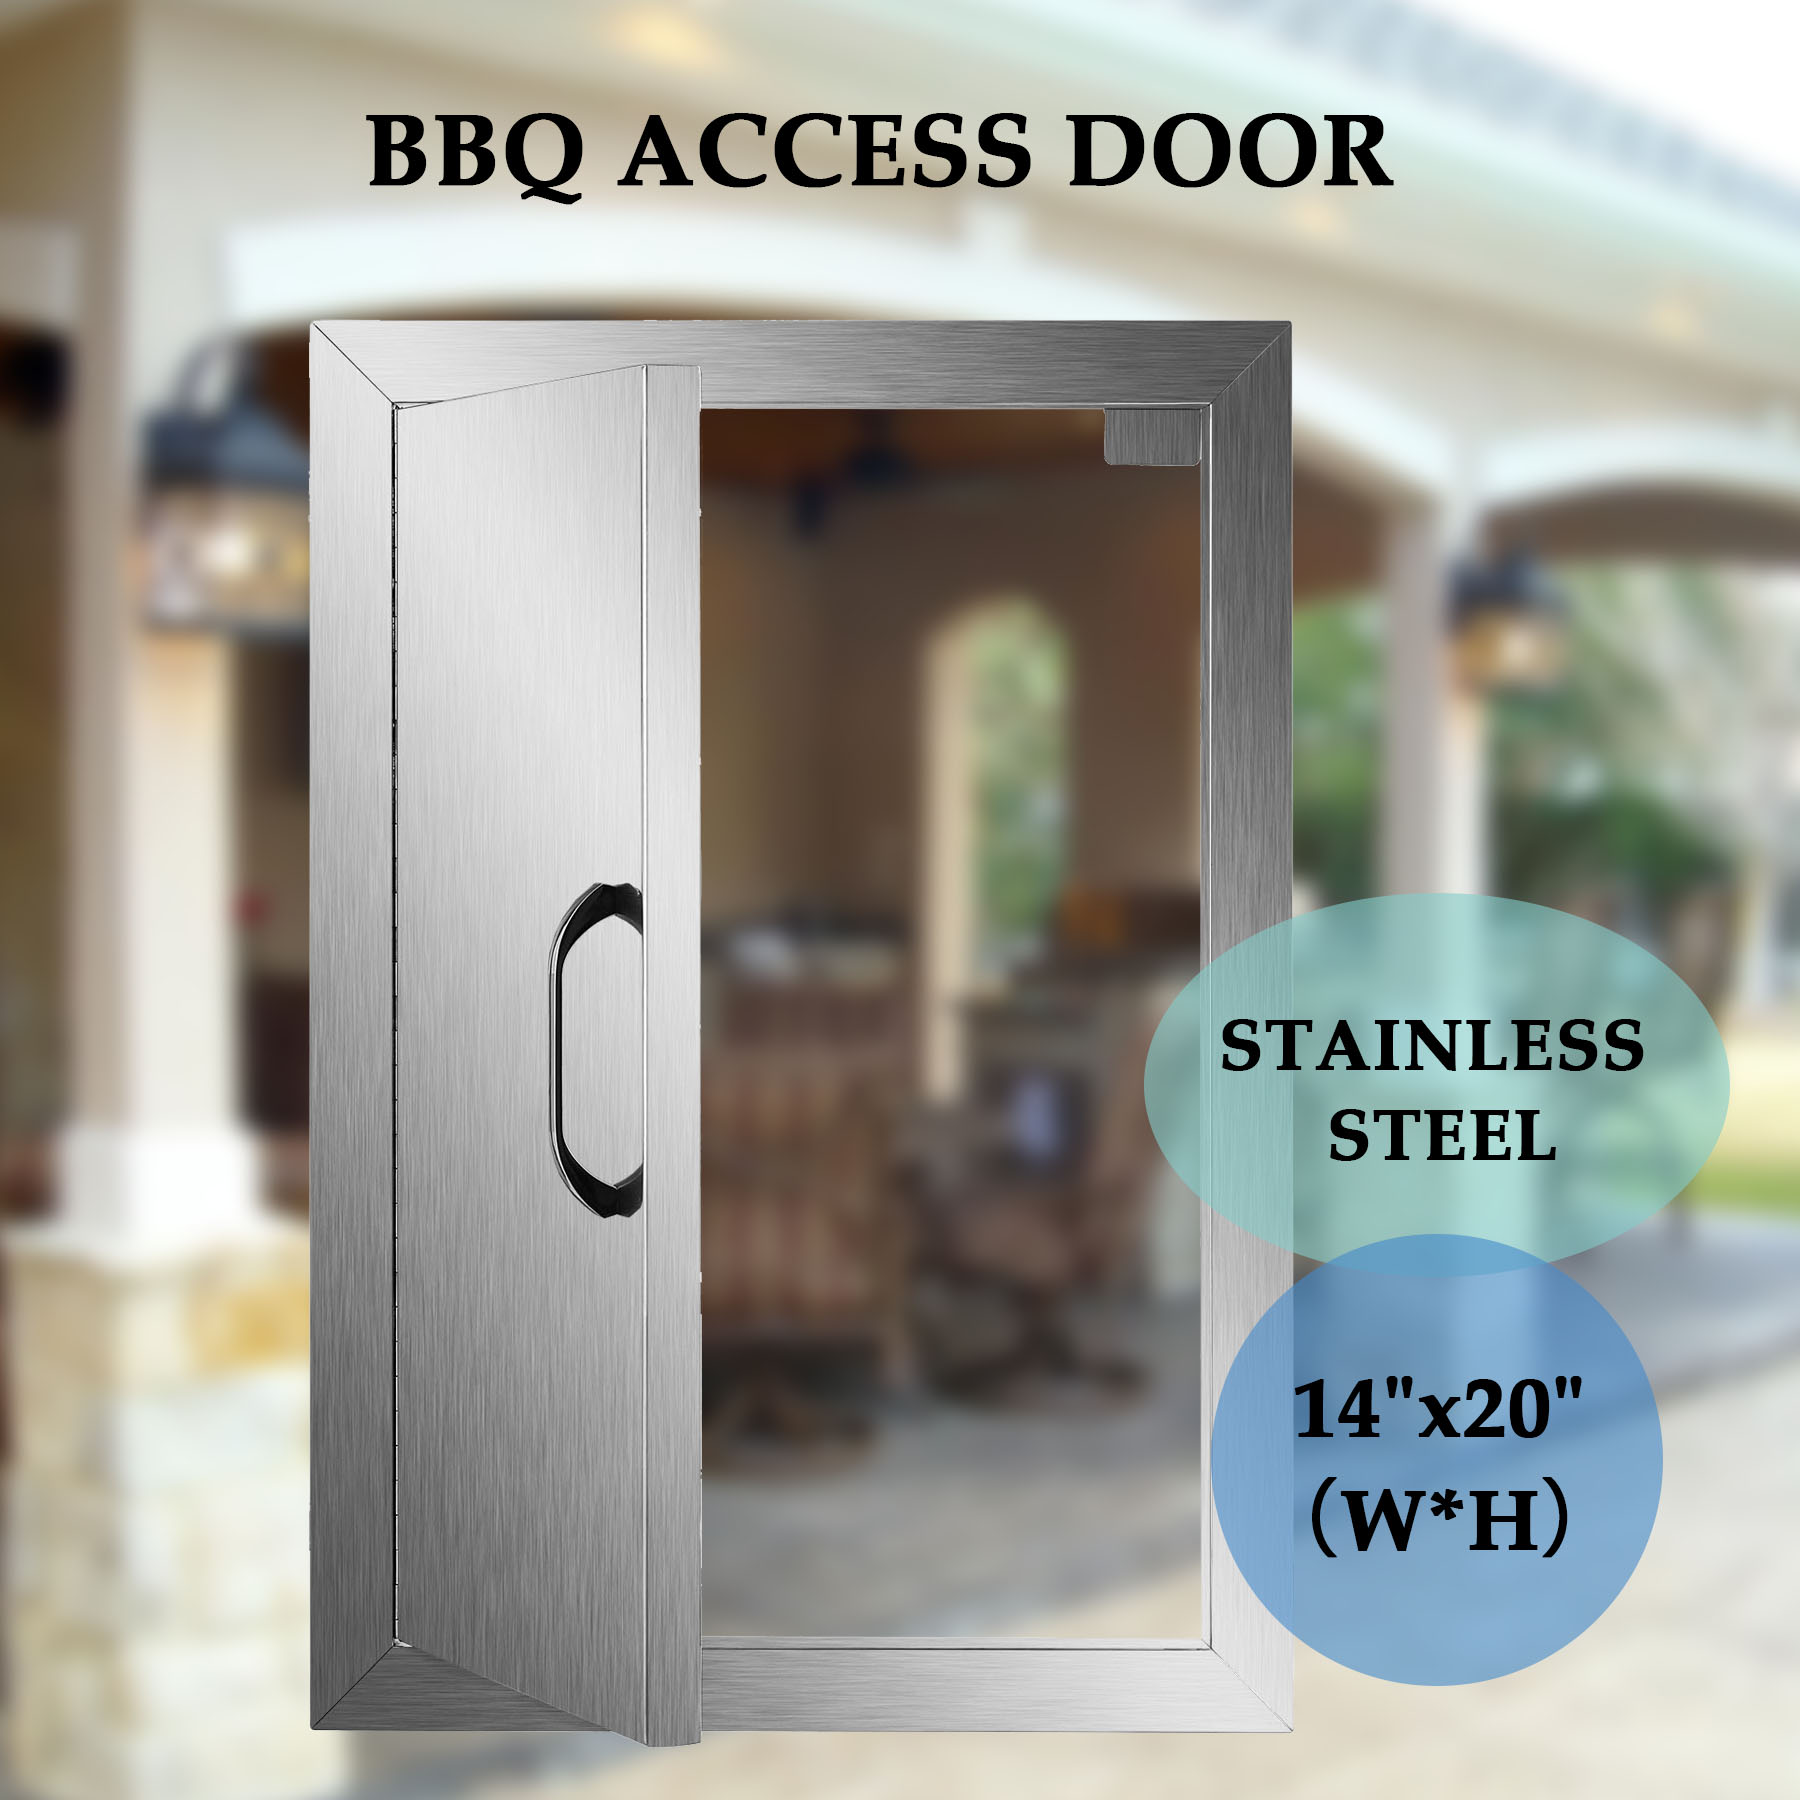 Single Walled Access Doors Outdoors Kitchen / BBQ Island 304 Stainless Steel